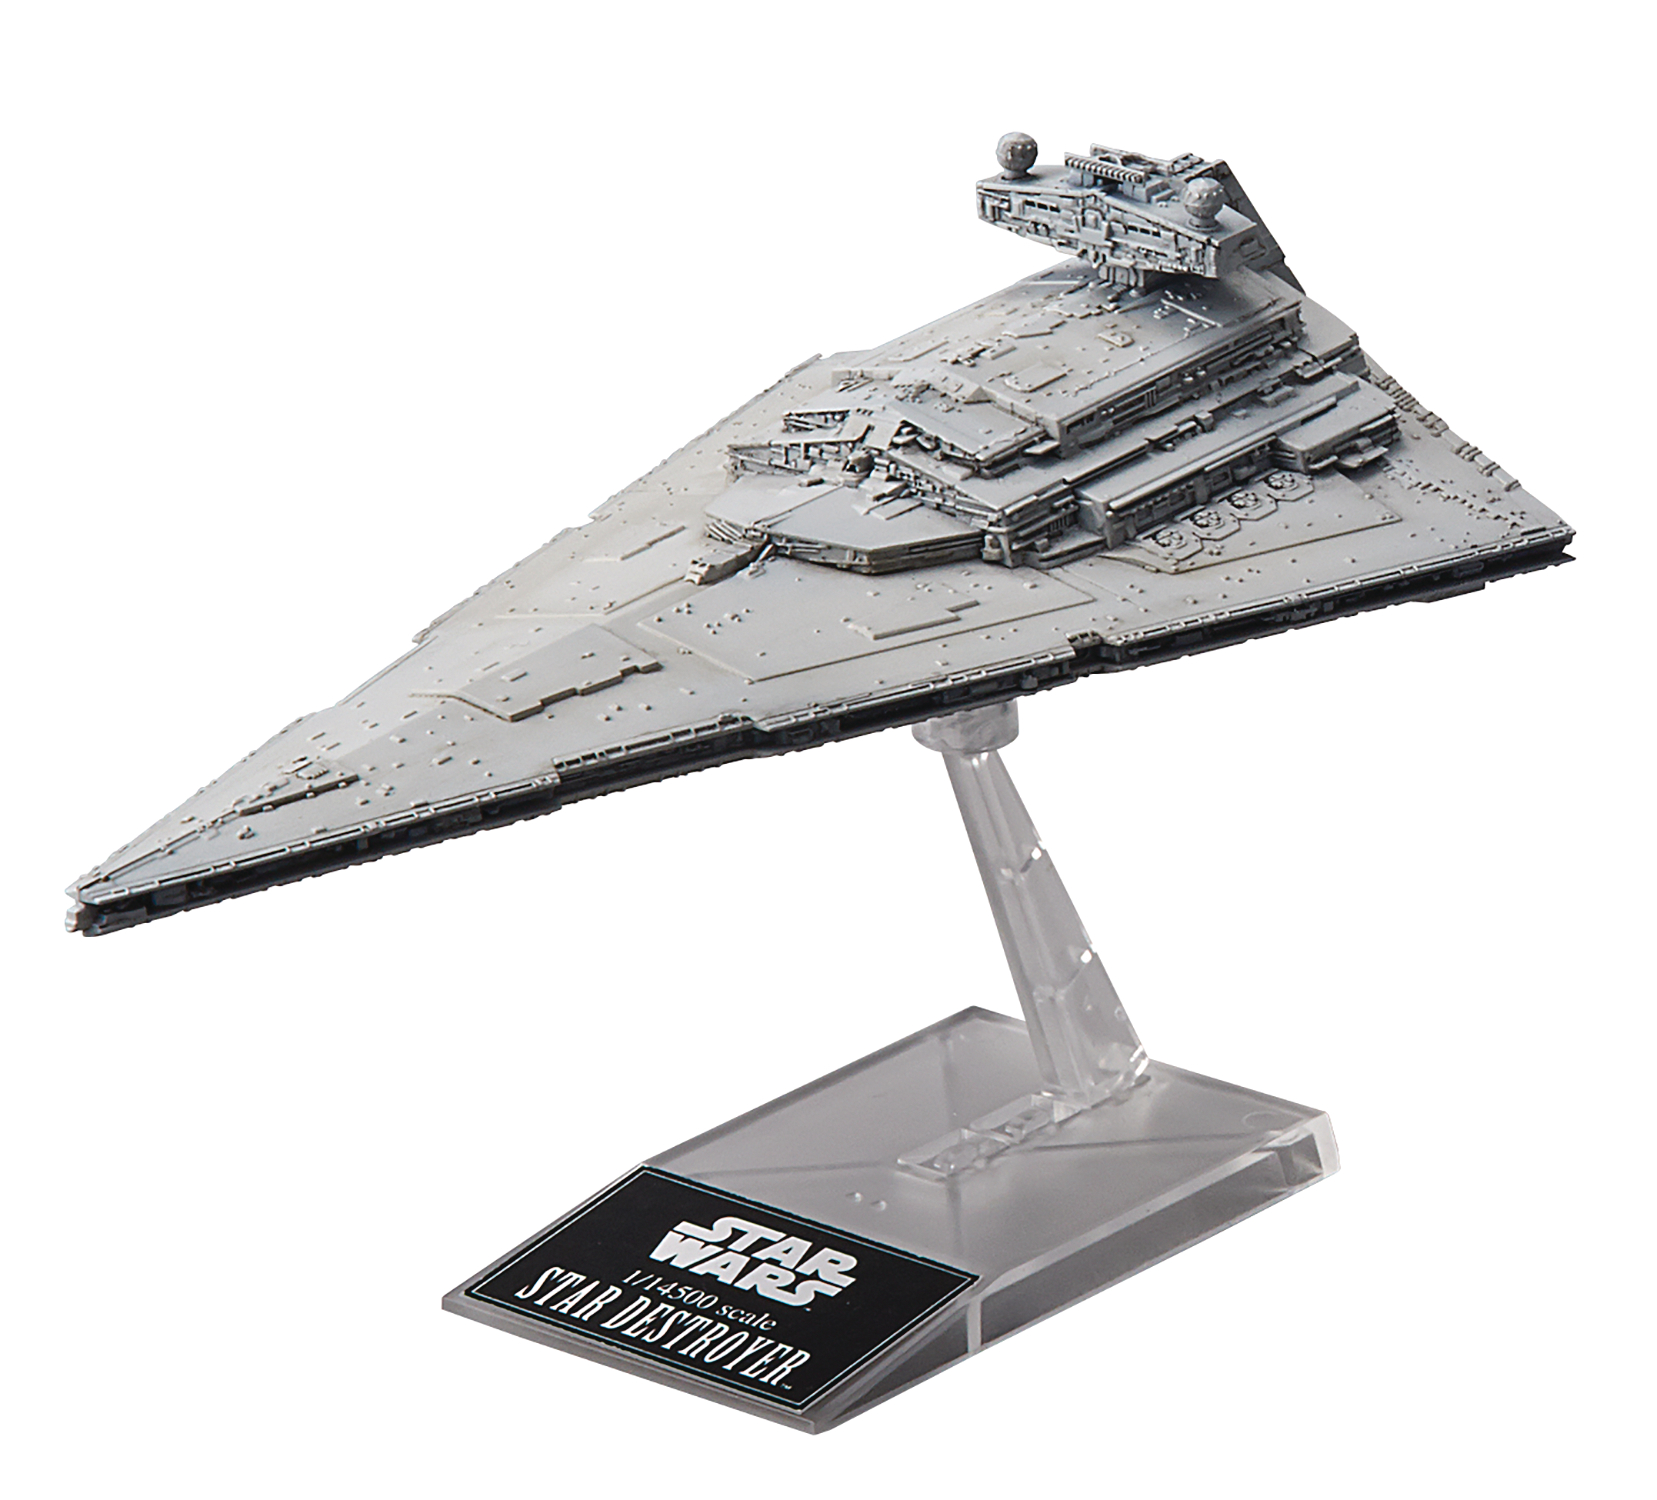 STAR WARS STAR DESTROYER 1/14500 MDL KIT